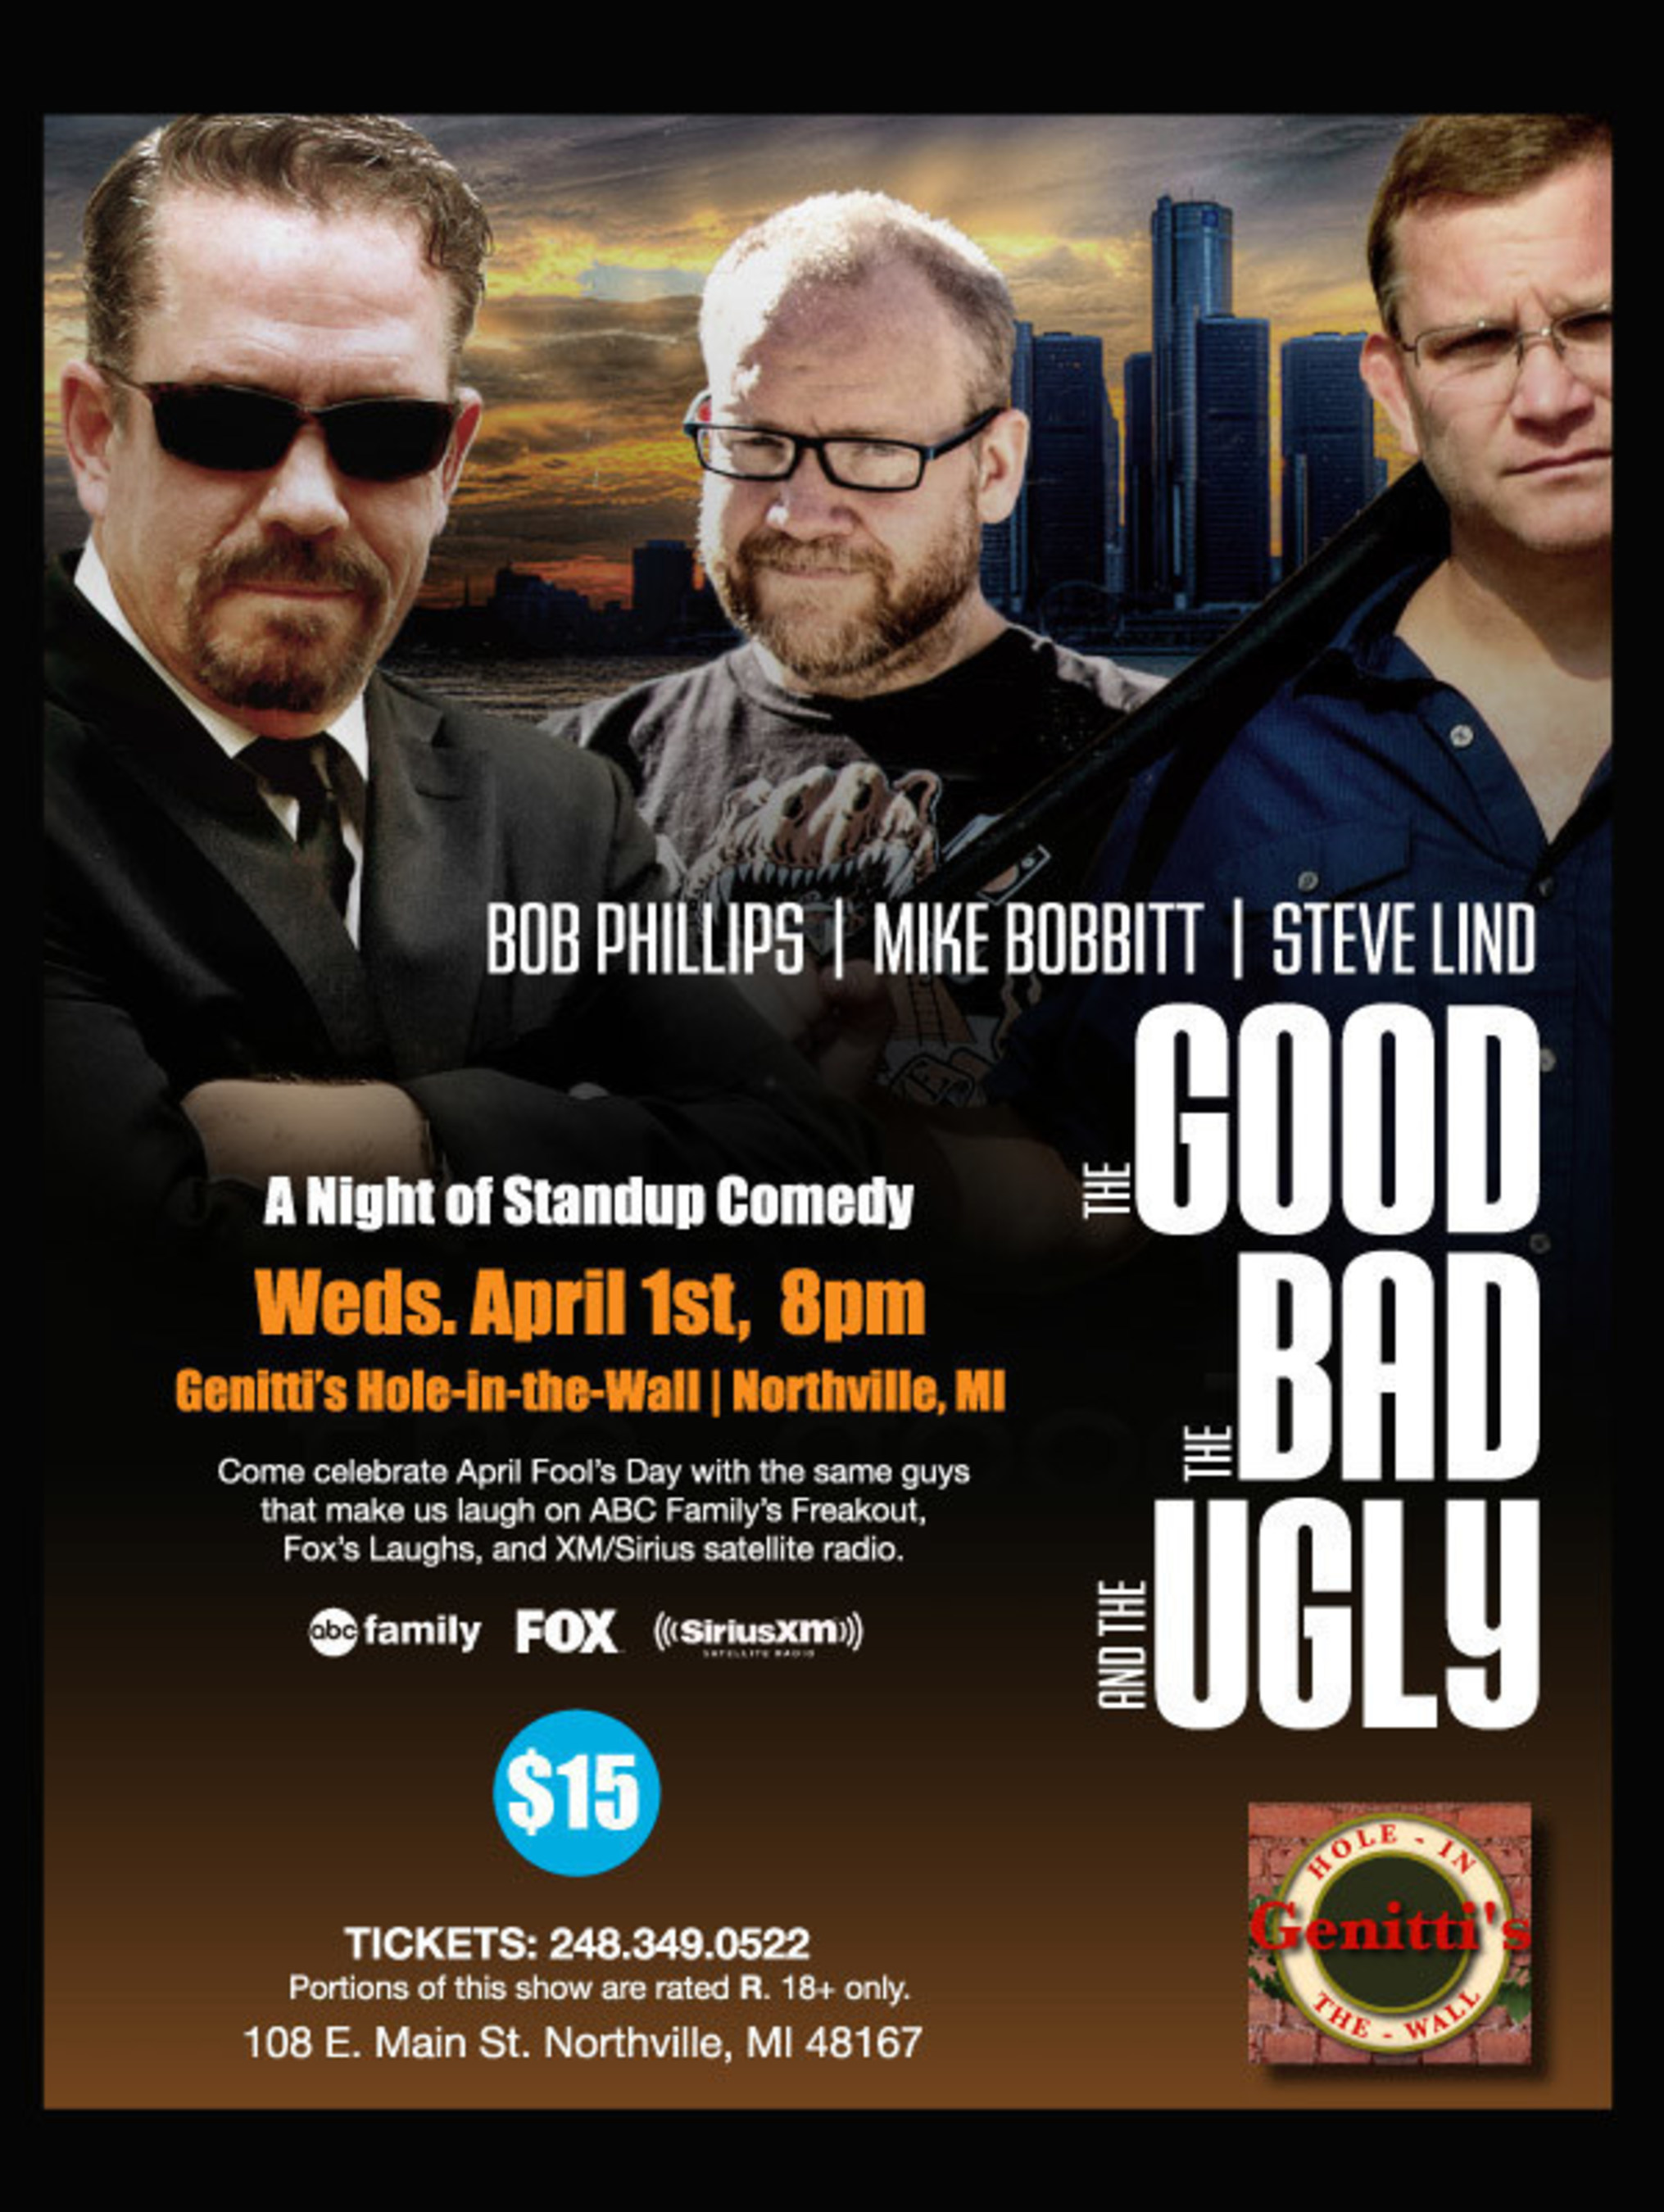 Genitti's of Northville Announces a Triple Dose of Comedy on April 1st With The Good, The Bad, and The Ugly